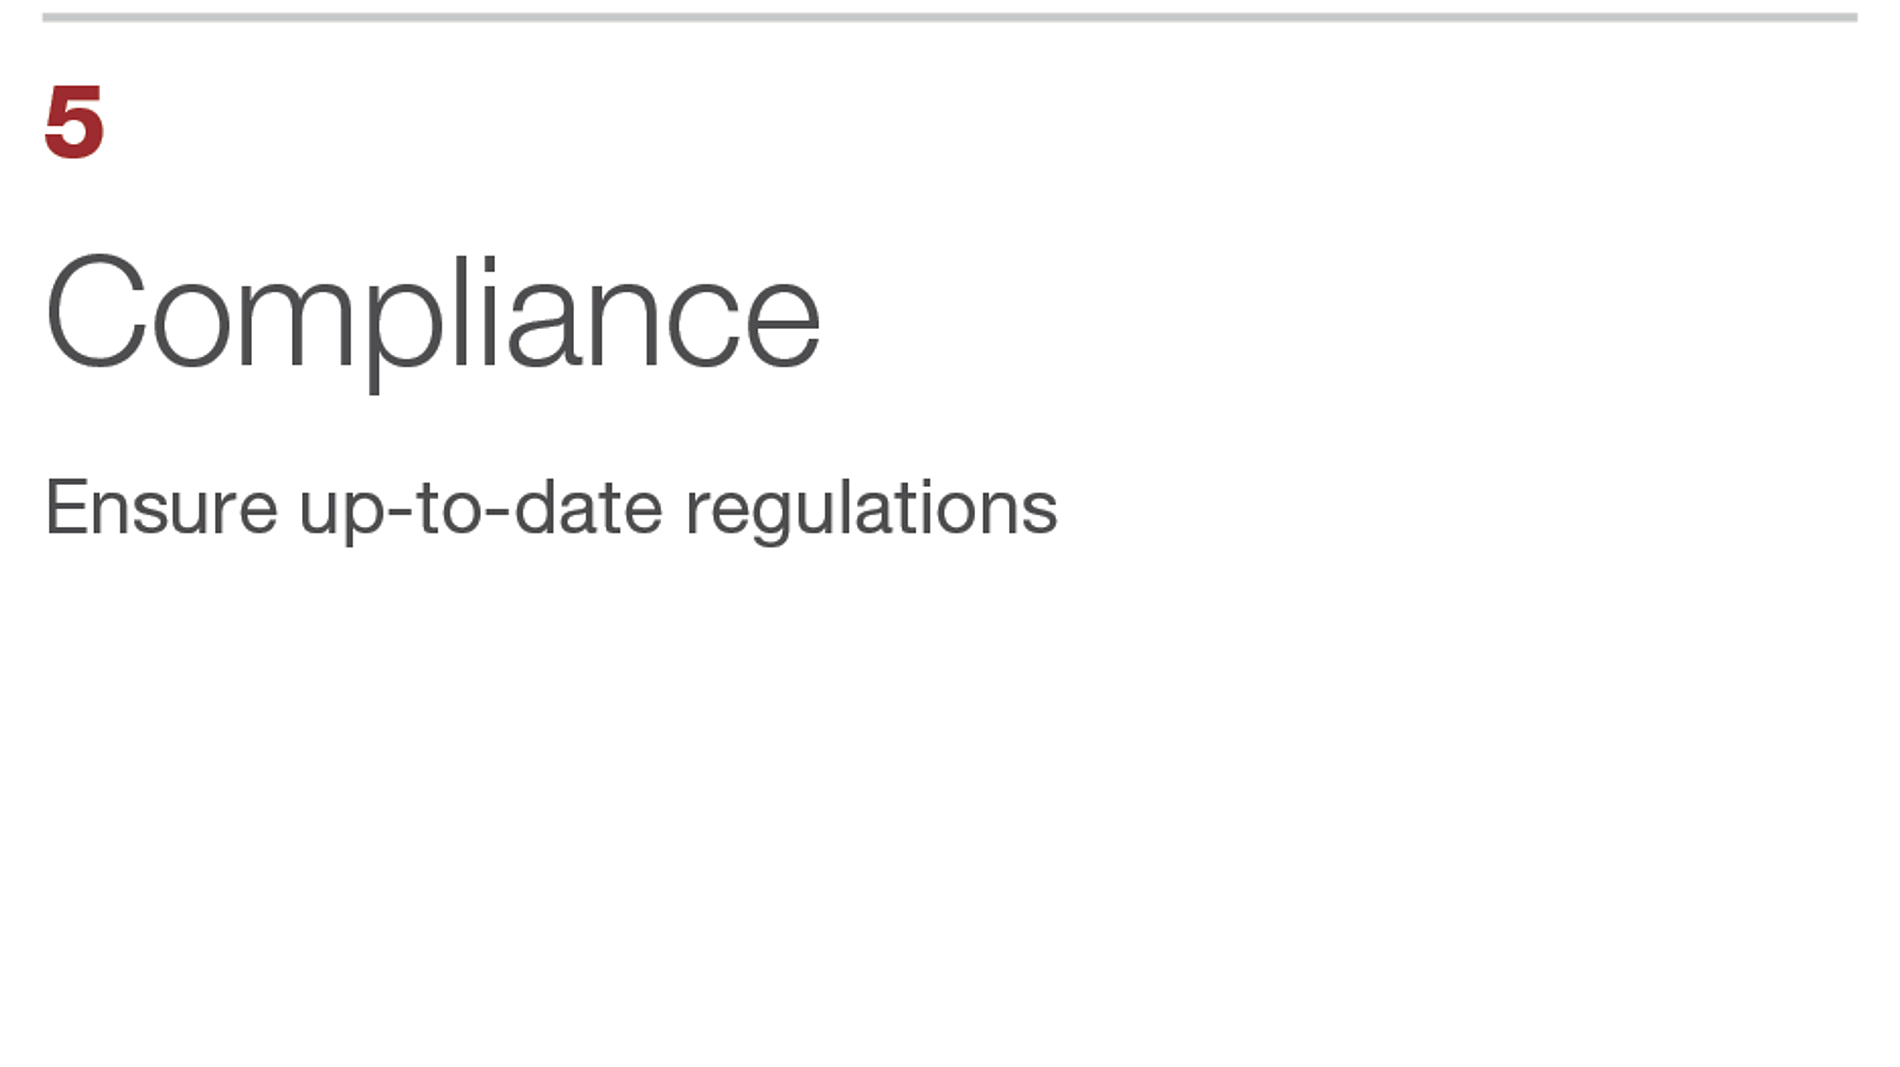 Compliance. Ensure up-to-date regulations